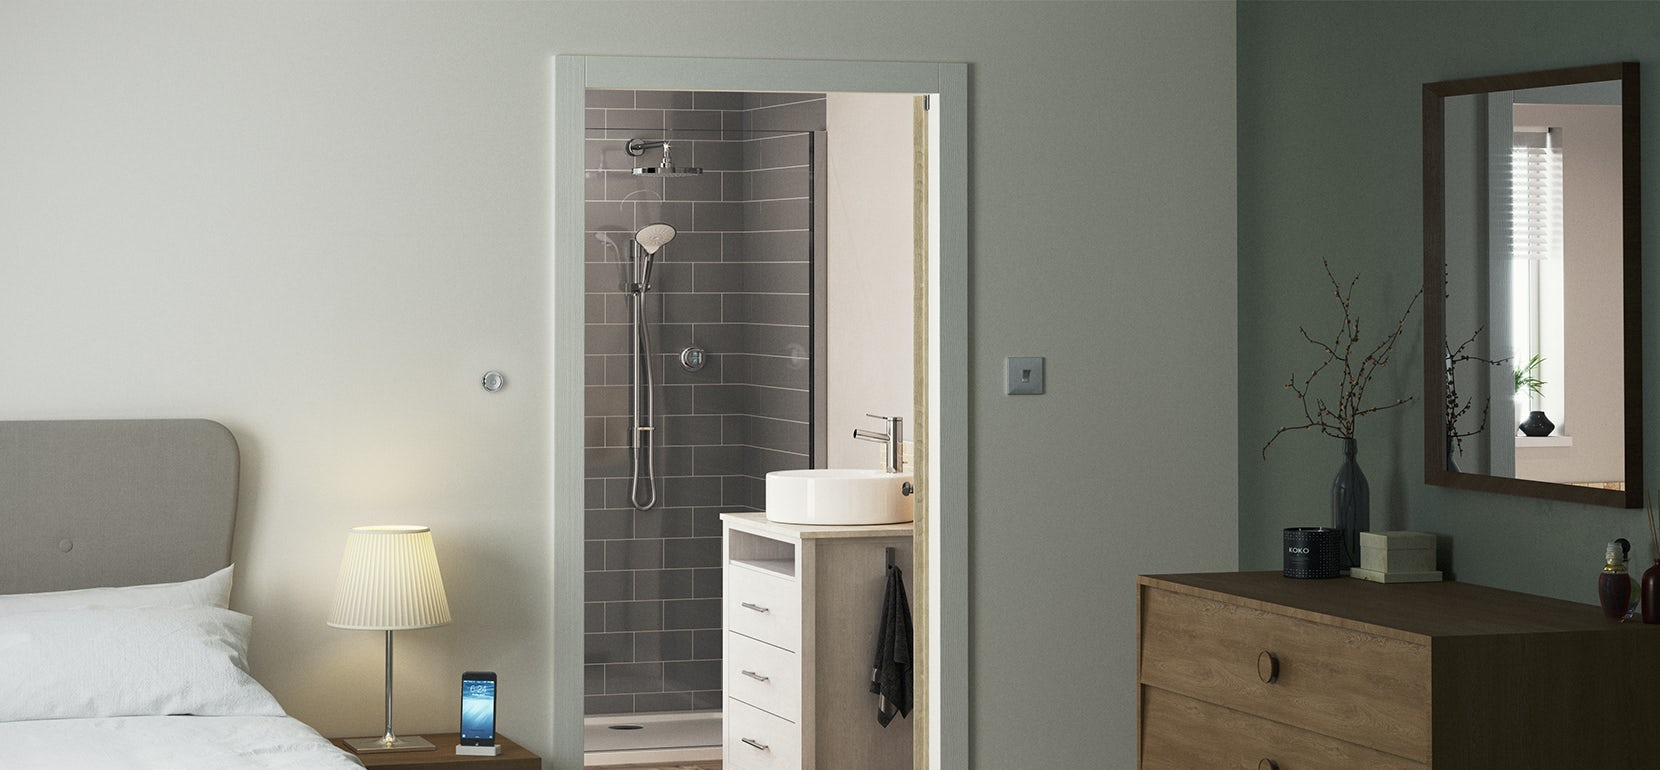 Introducing smart showering from Mira Showers